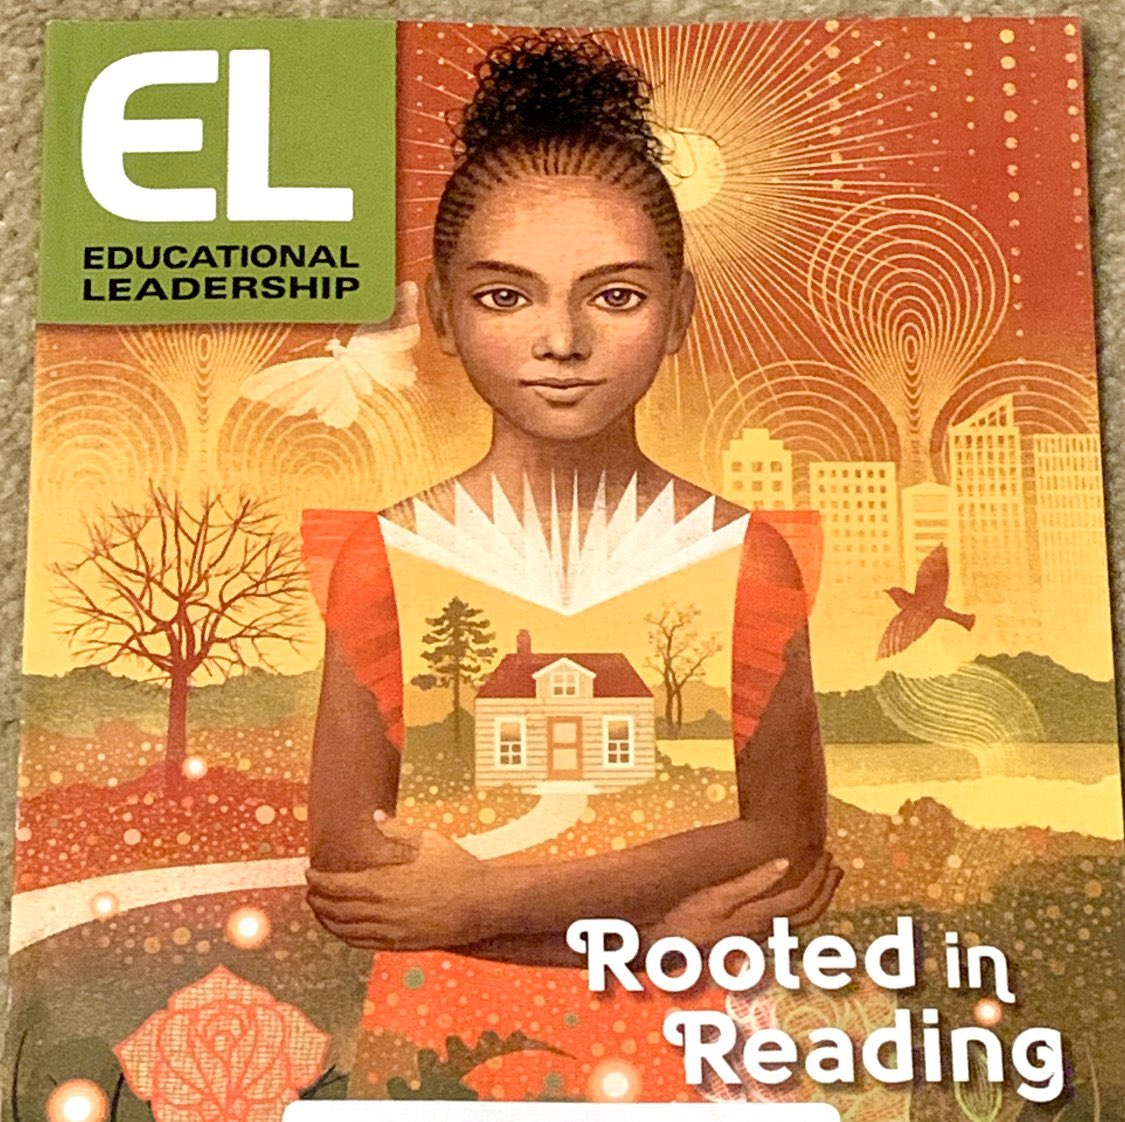 """At my previous high school, our interview committee asked all candidates, 'What are you reading?' and then followed up with, 'What are you learning from that reading that you can bring to your classroom?'"" @pennykittle @ELmagazine https://t.co/EOtxE45sSx"